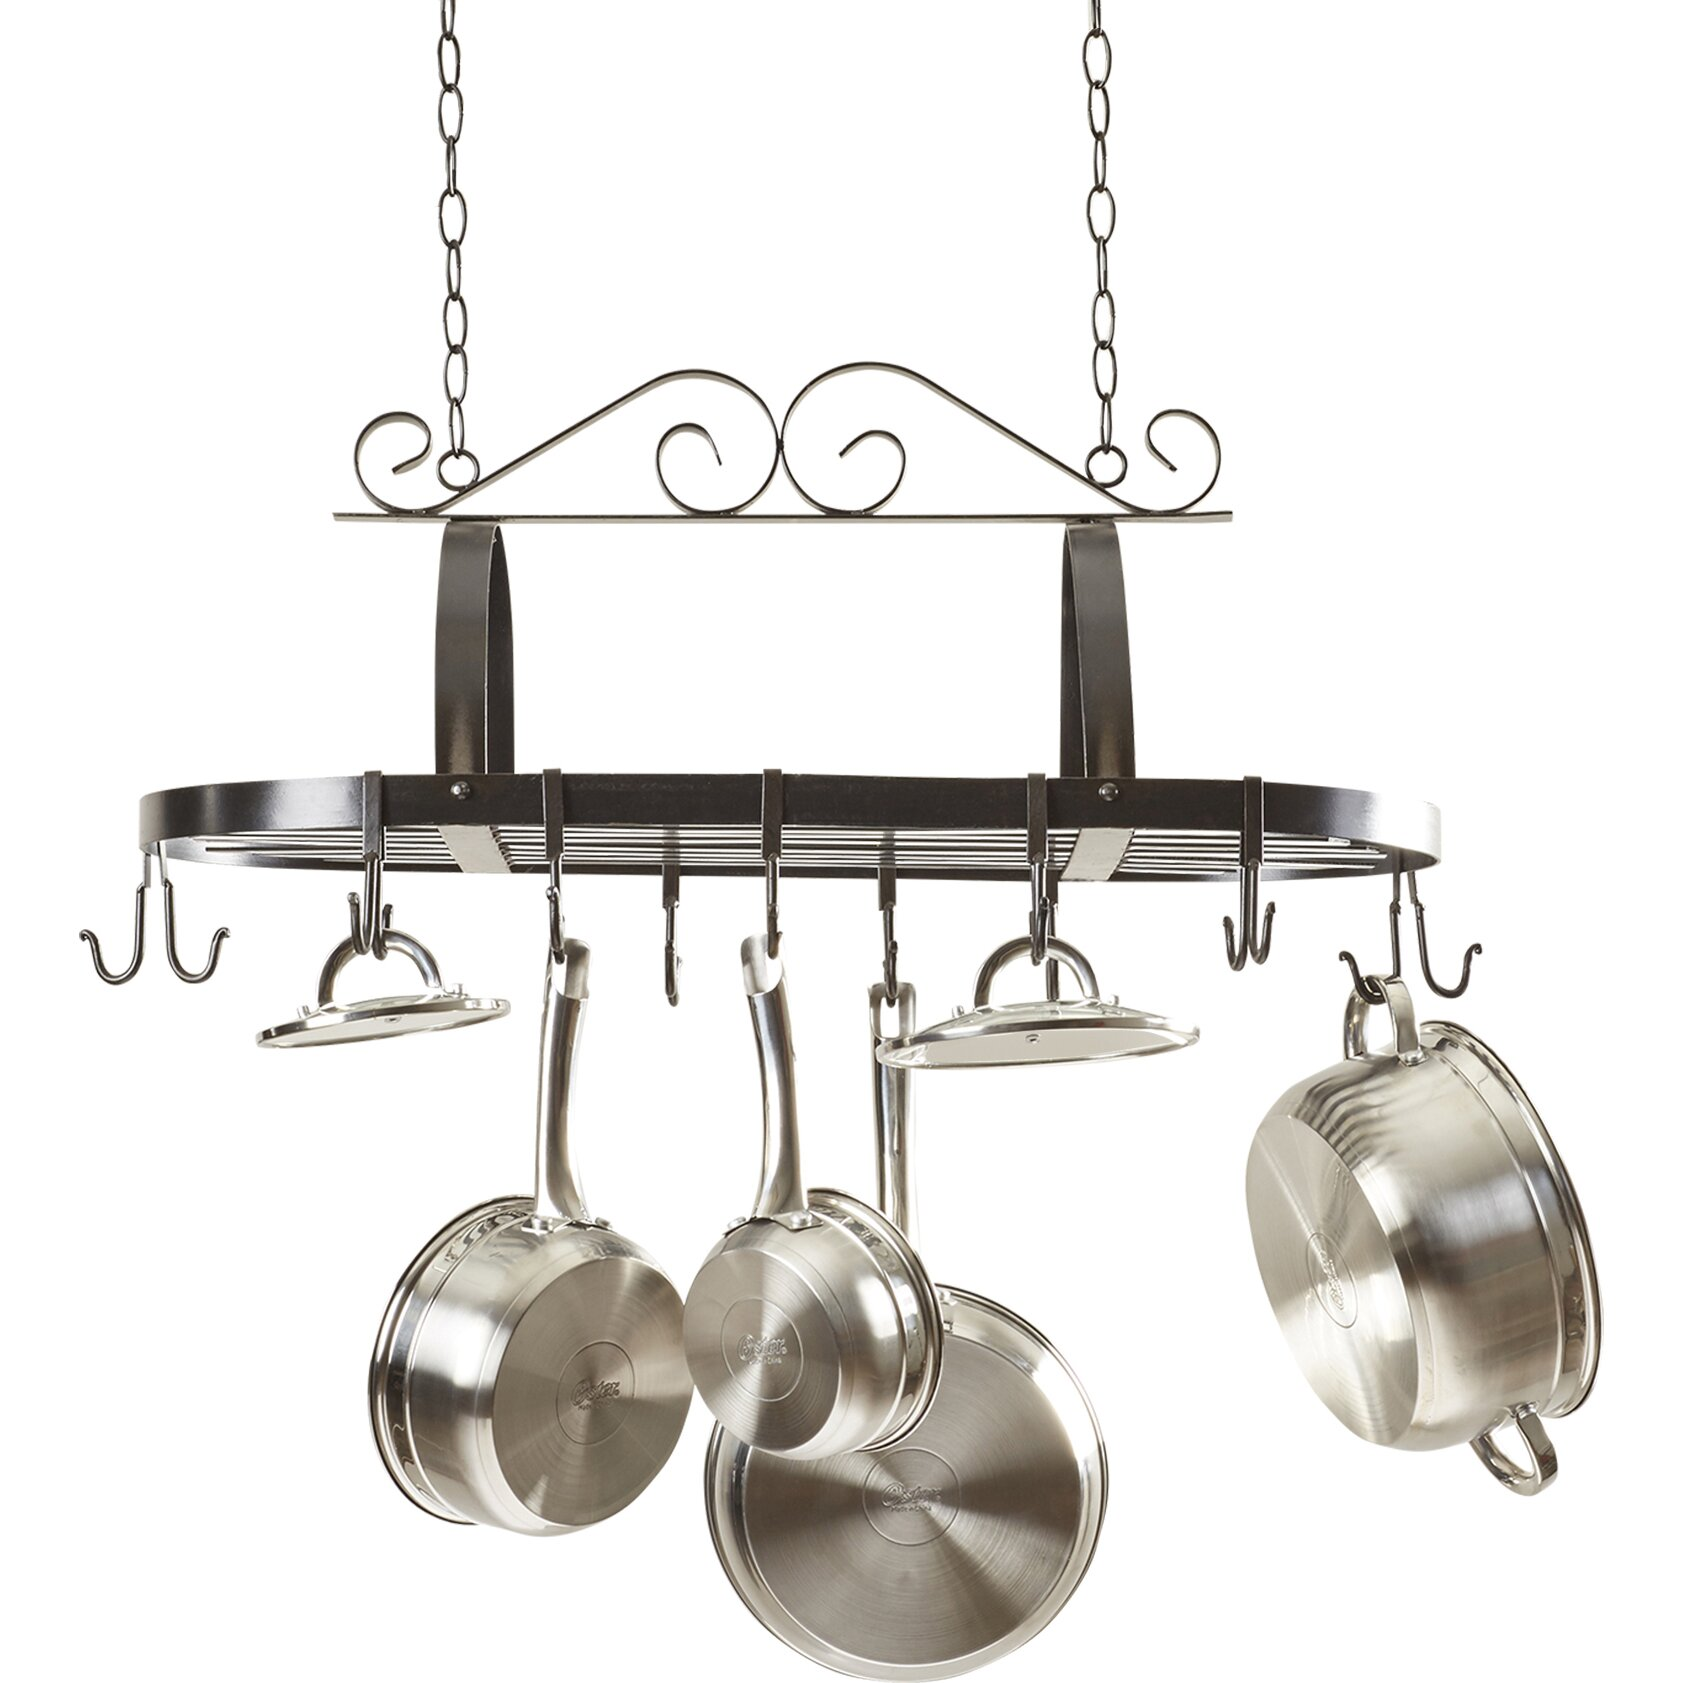 Darby home co kitchen hanging pot rack reviews wayfair for Pot racks for kitchen